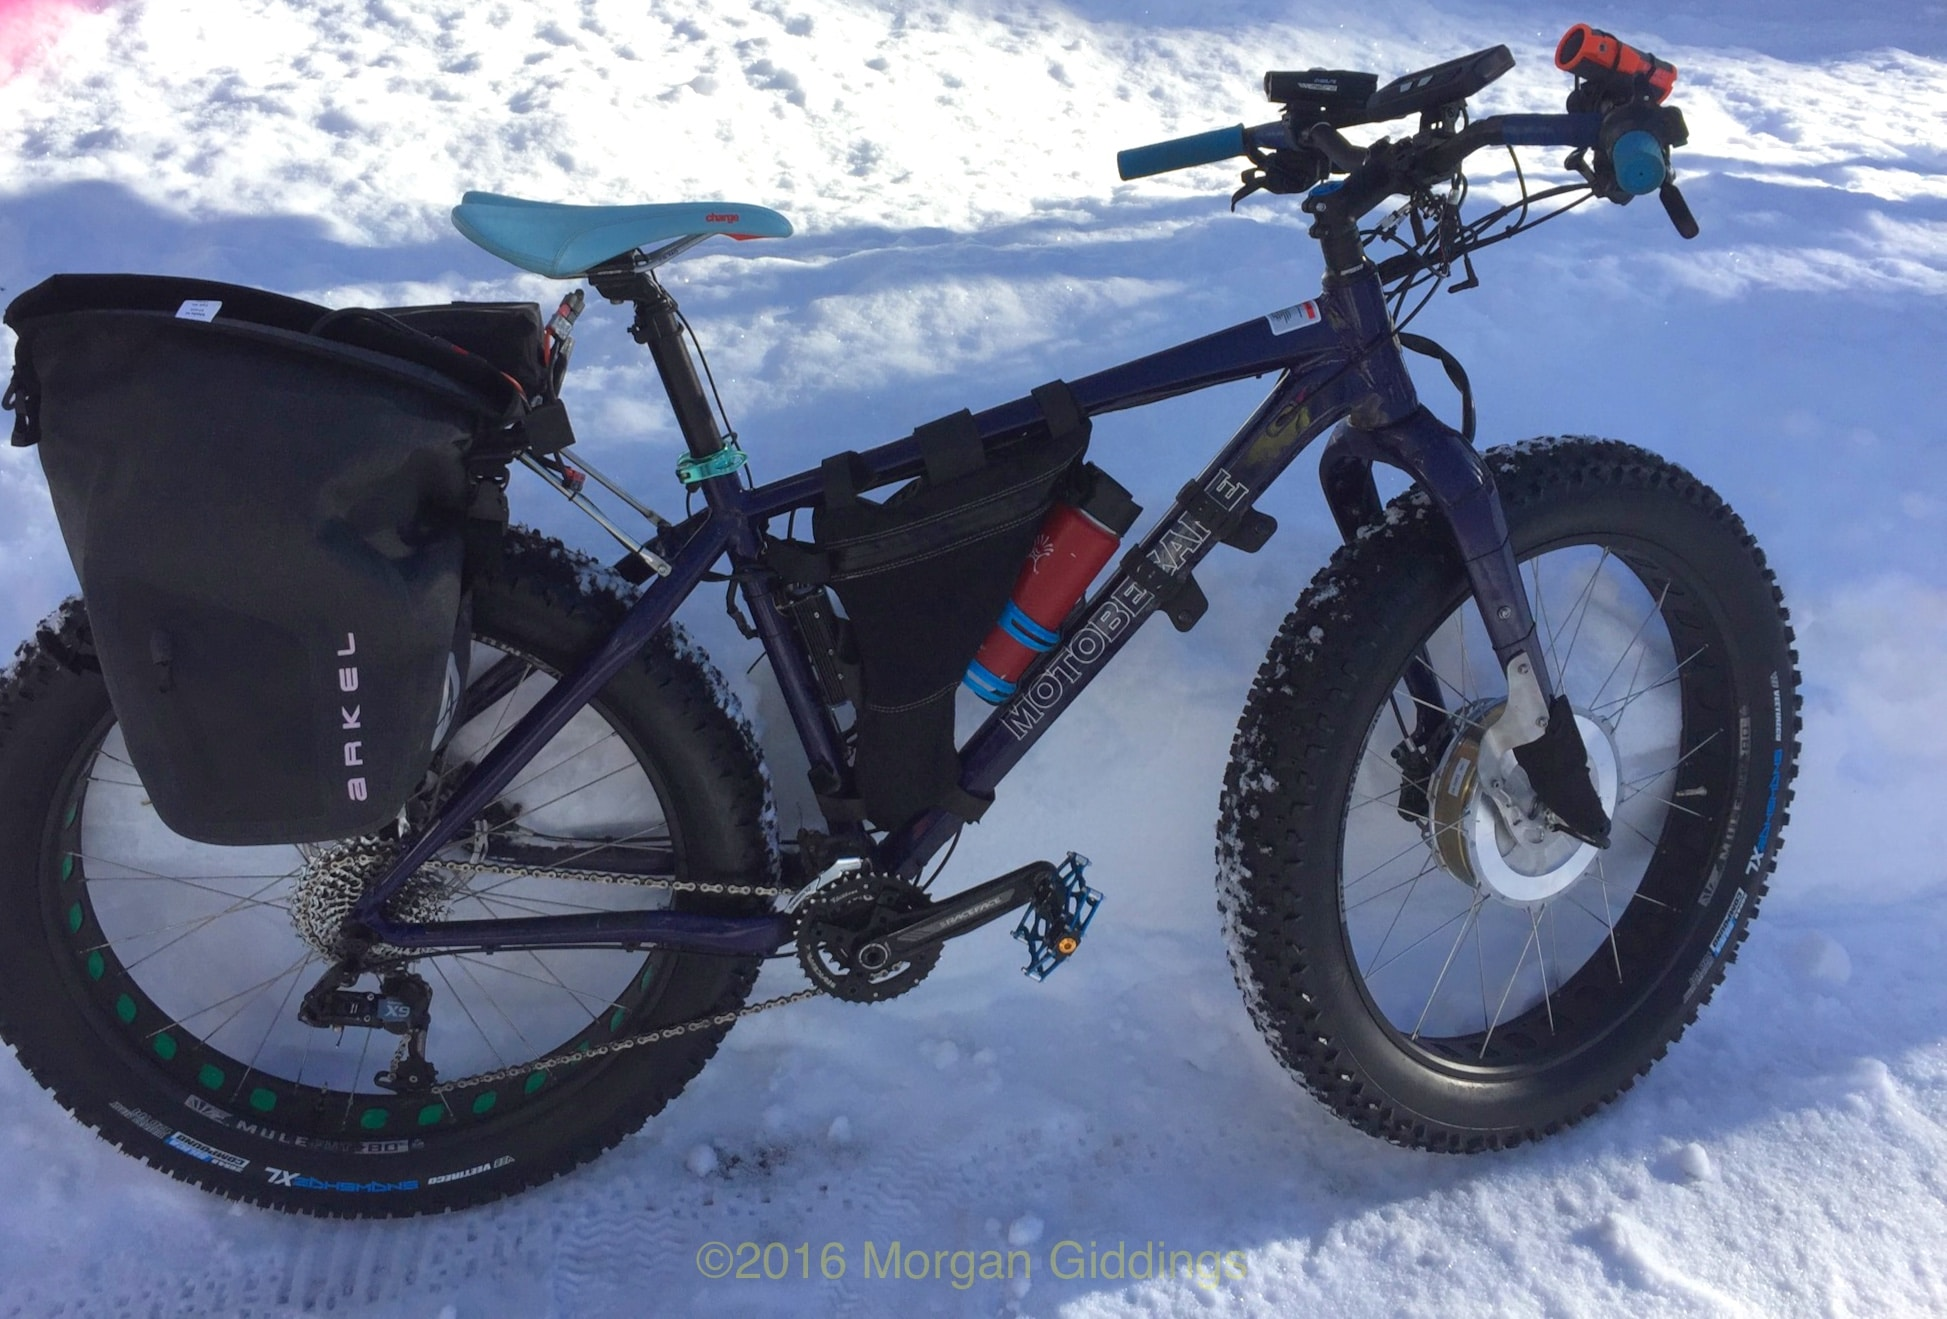 All Wheel Drive Electric Fat Bike Makes Snow Riding Easier Cycle9com